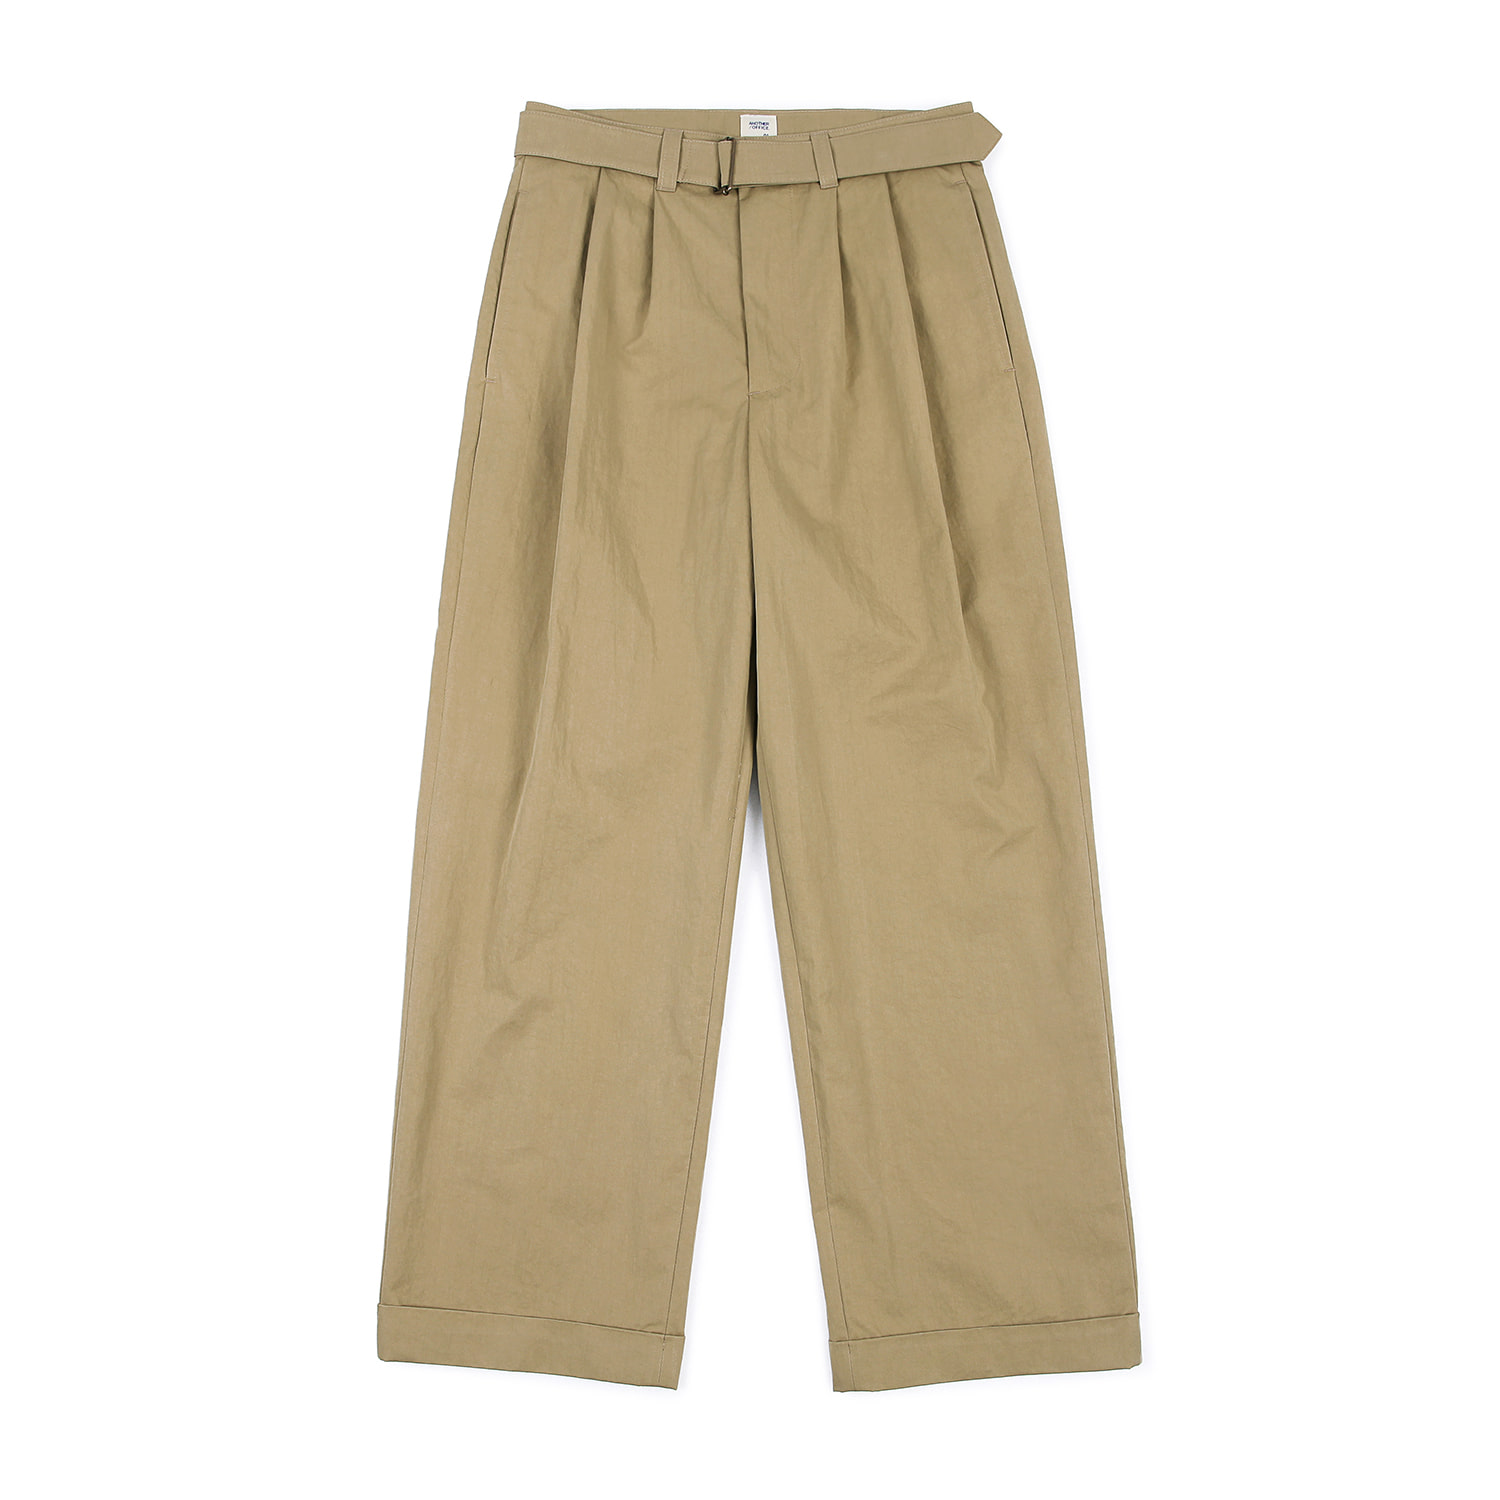 25%OFF_Hemingway Belted Turn-up Pants (Khaki)